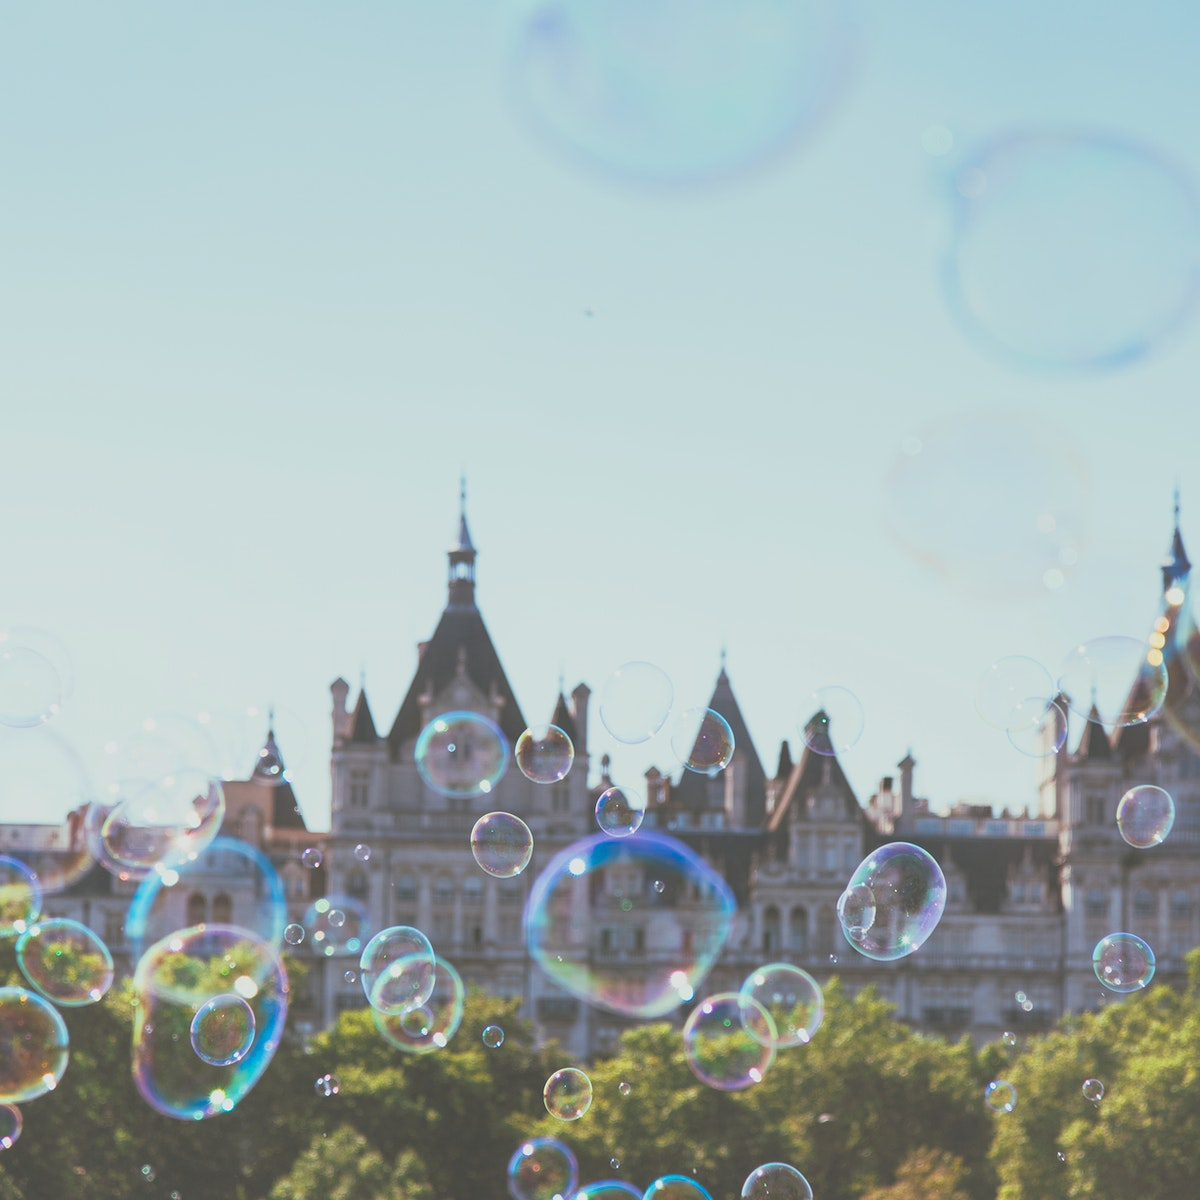 Bubbles with Parliament building on the background